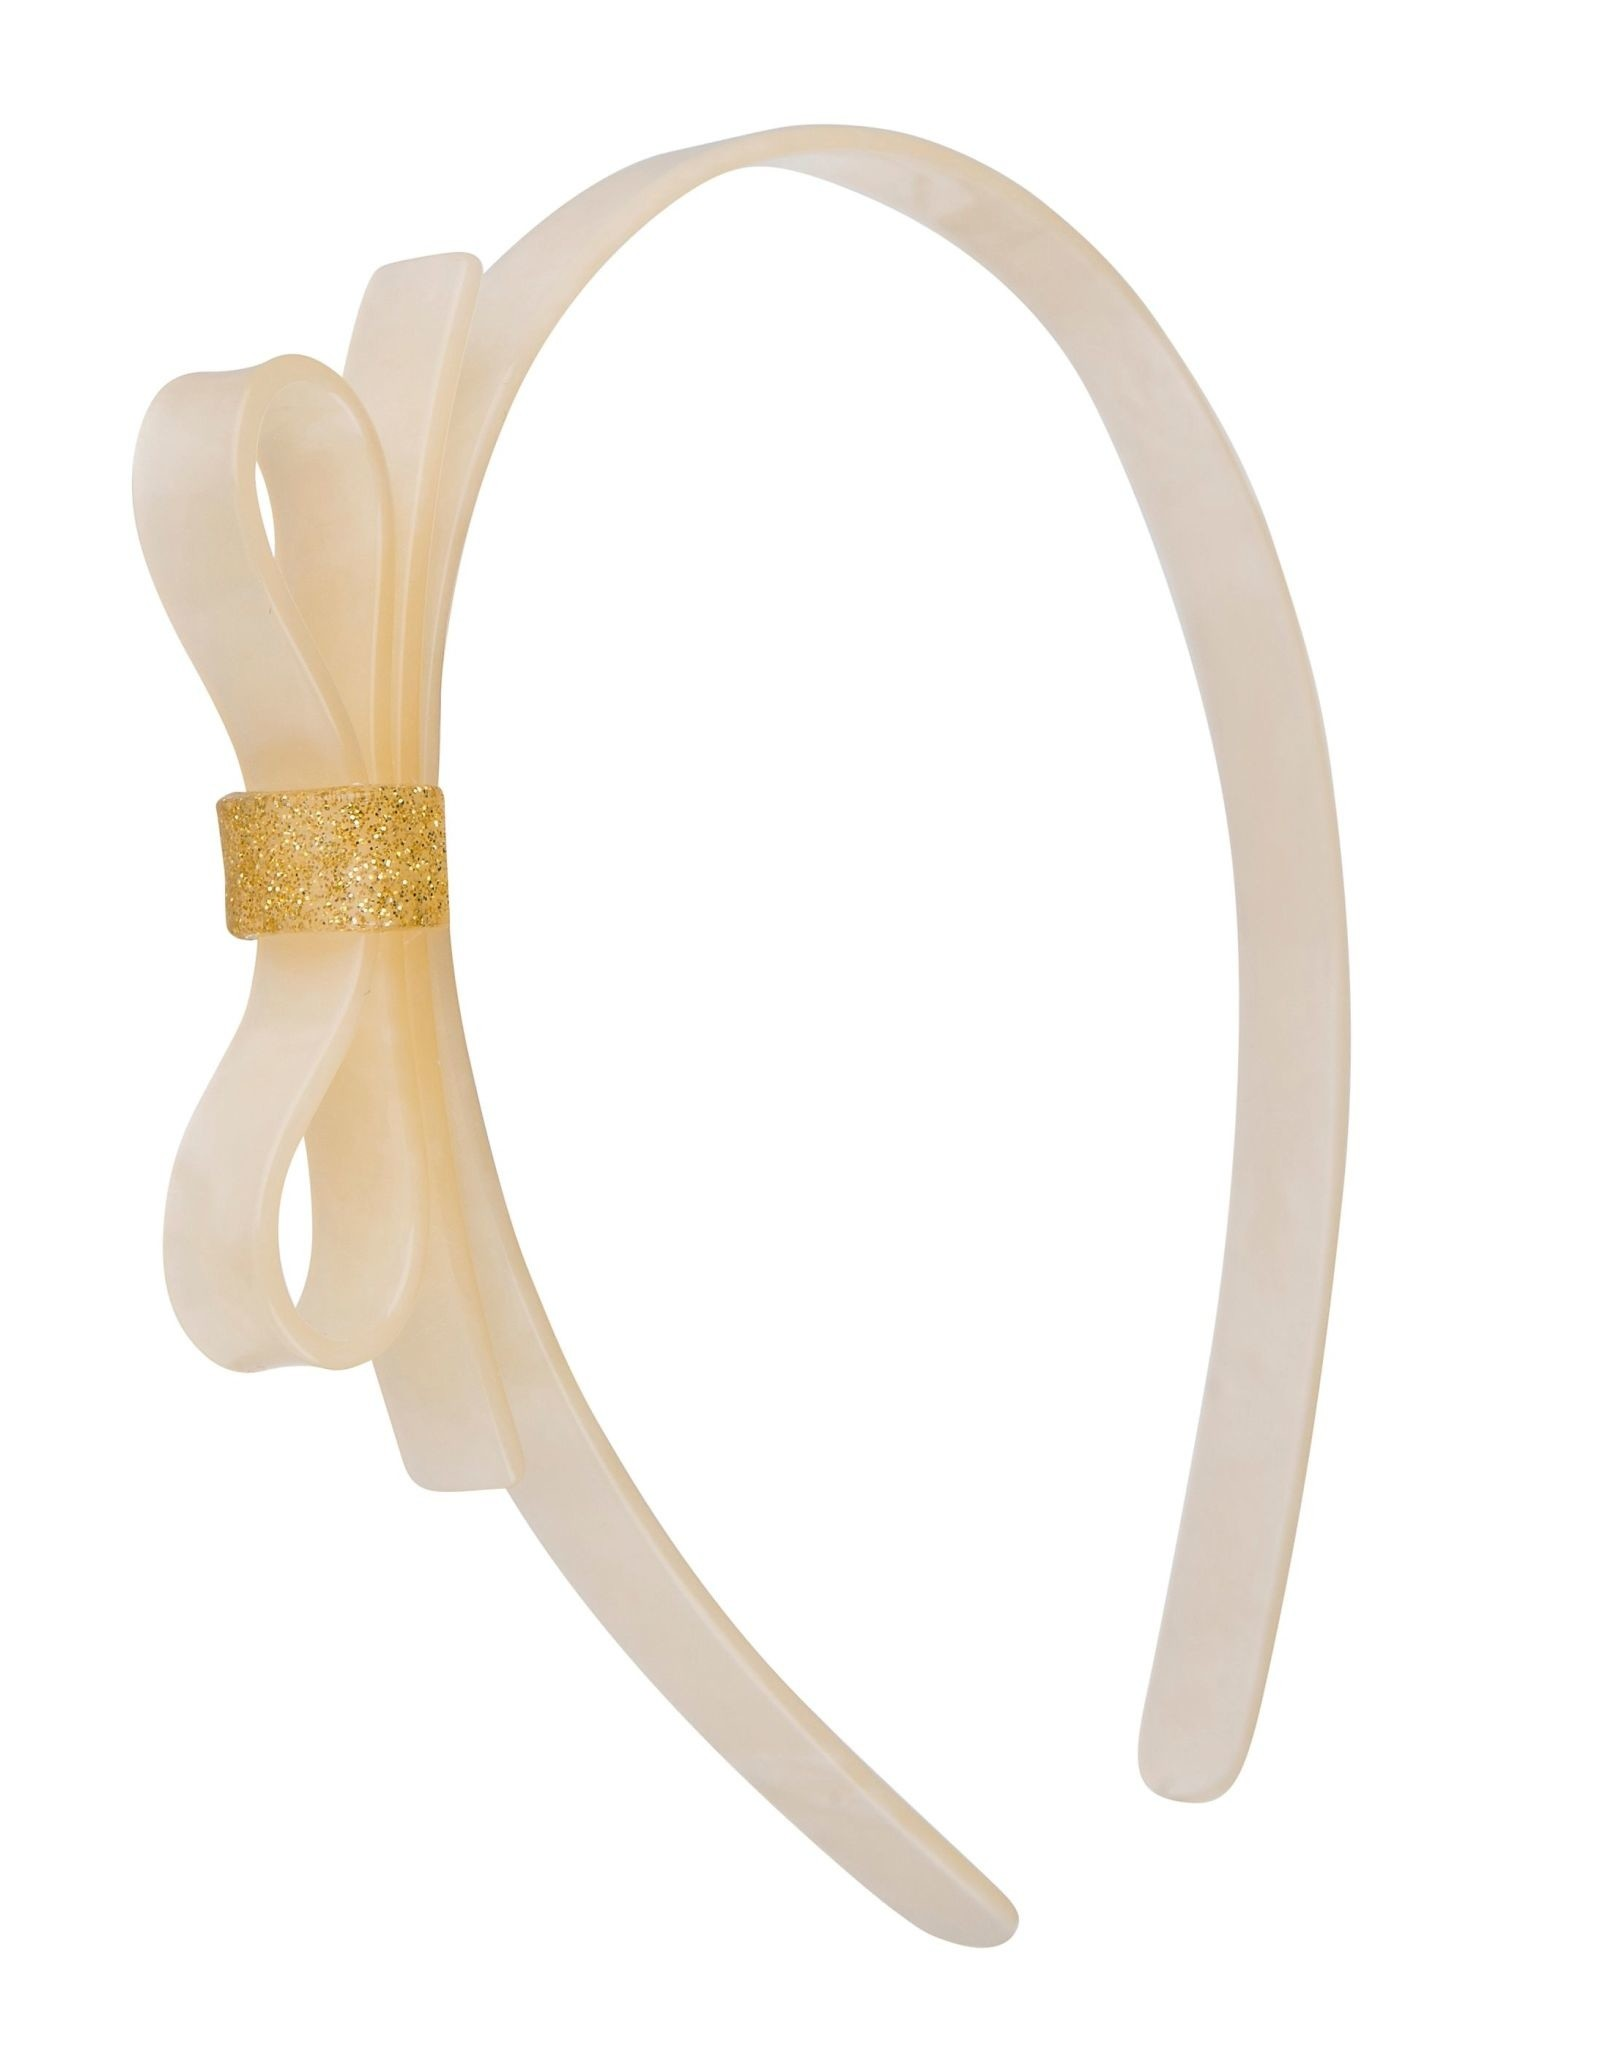 Lilies & Roses HB thin bow- pearlized white